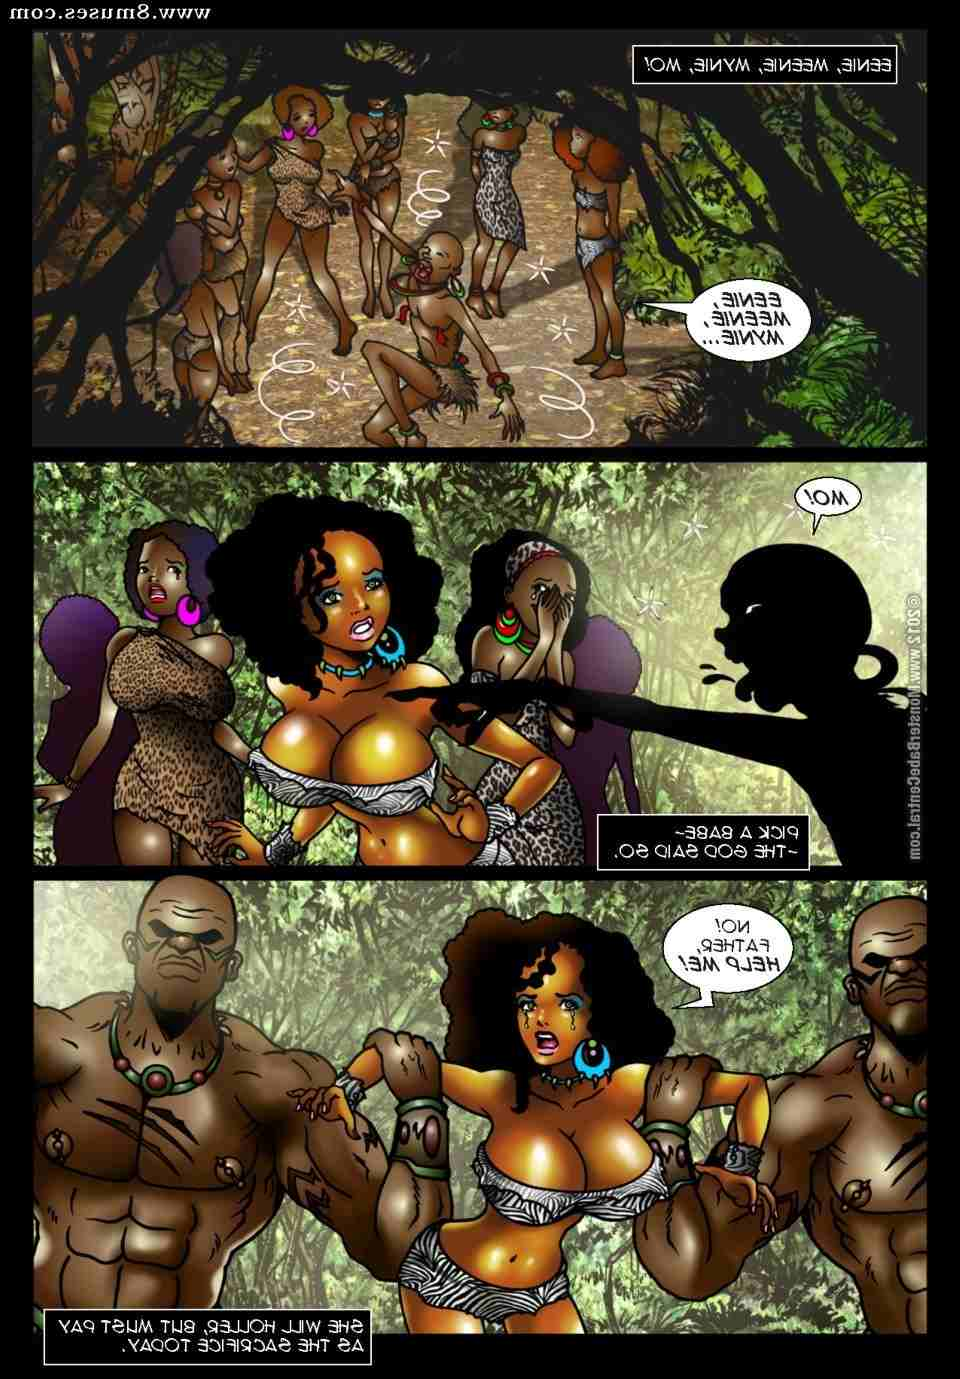 Central-Comics/Horror-Babe-Central/Fable-of-Fright Fable_of_Fright__8muses_-_Sex_and_Porn_Comics_208.jpg